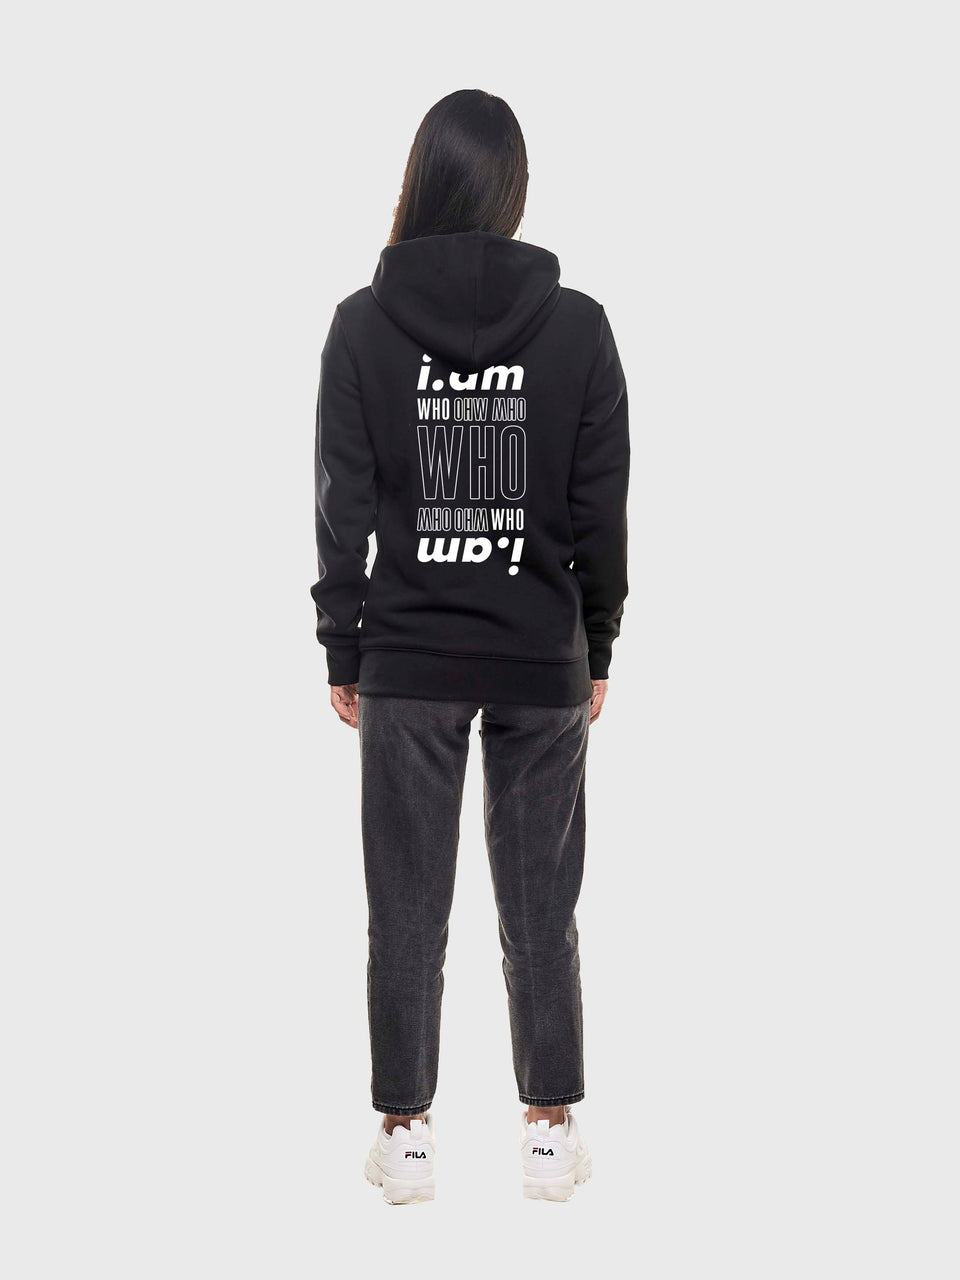 I am who I am - Black - Unisex pull over hoodie